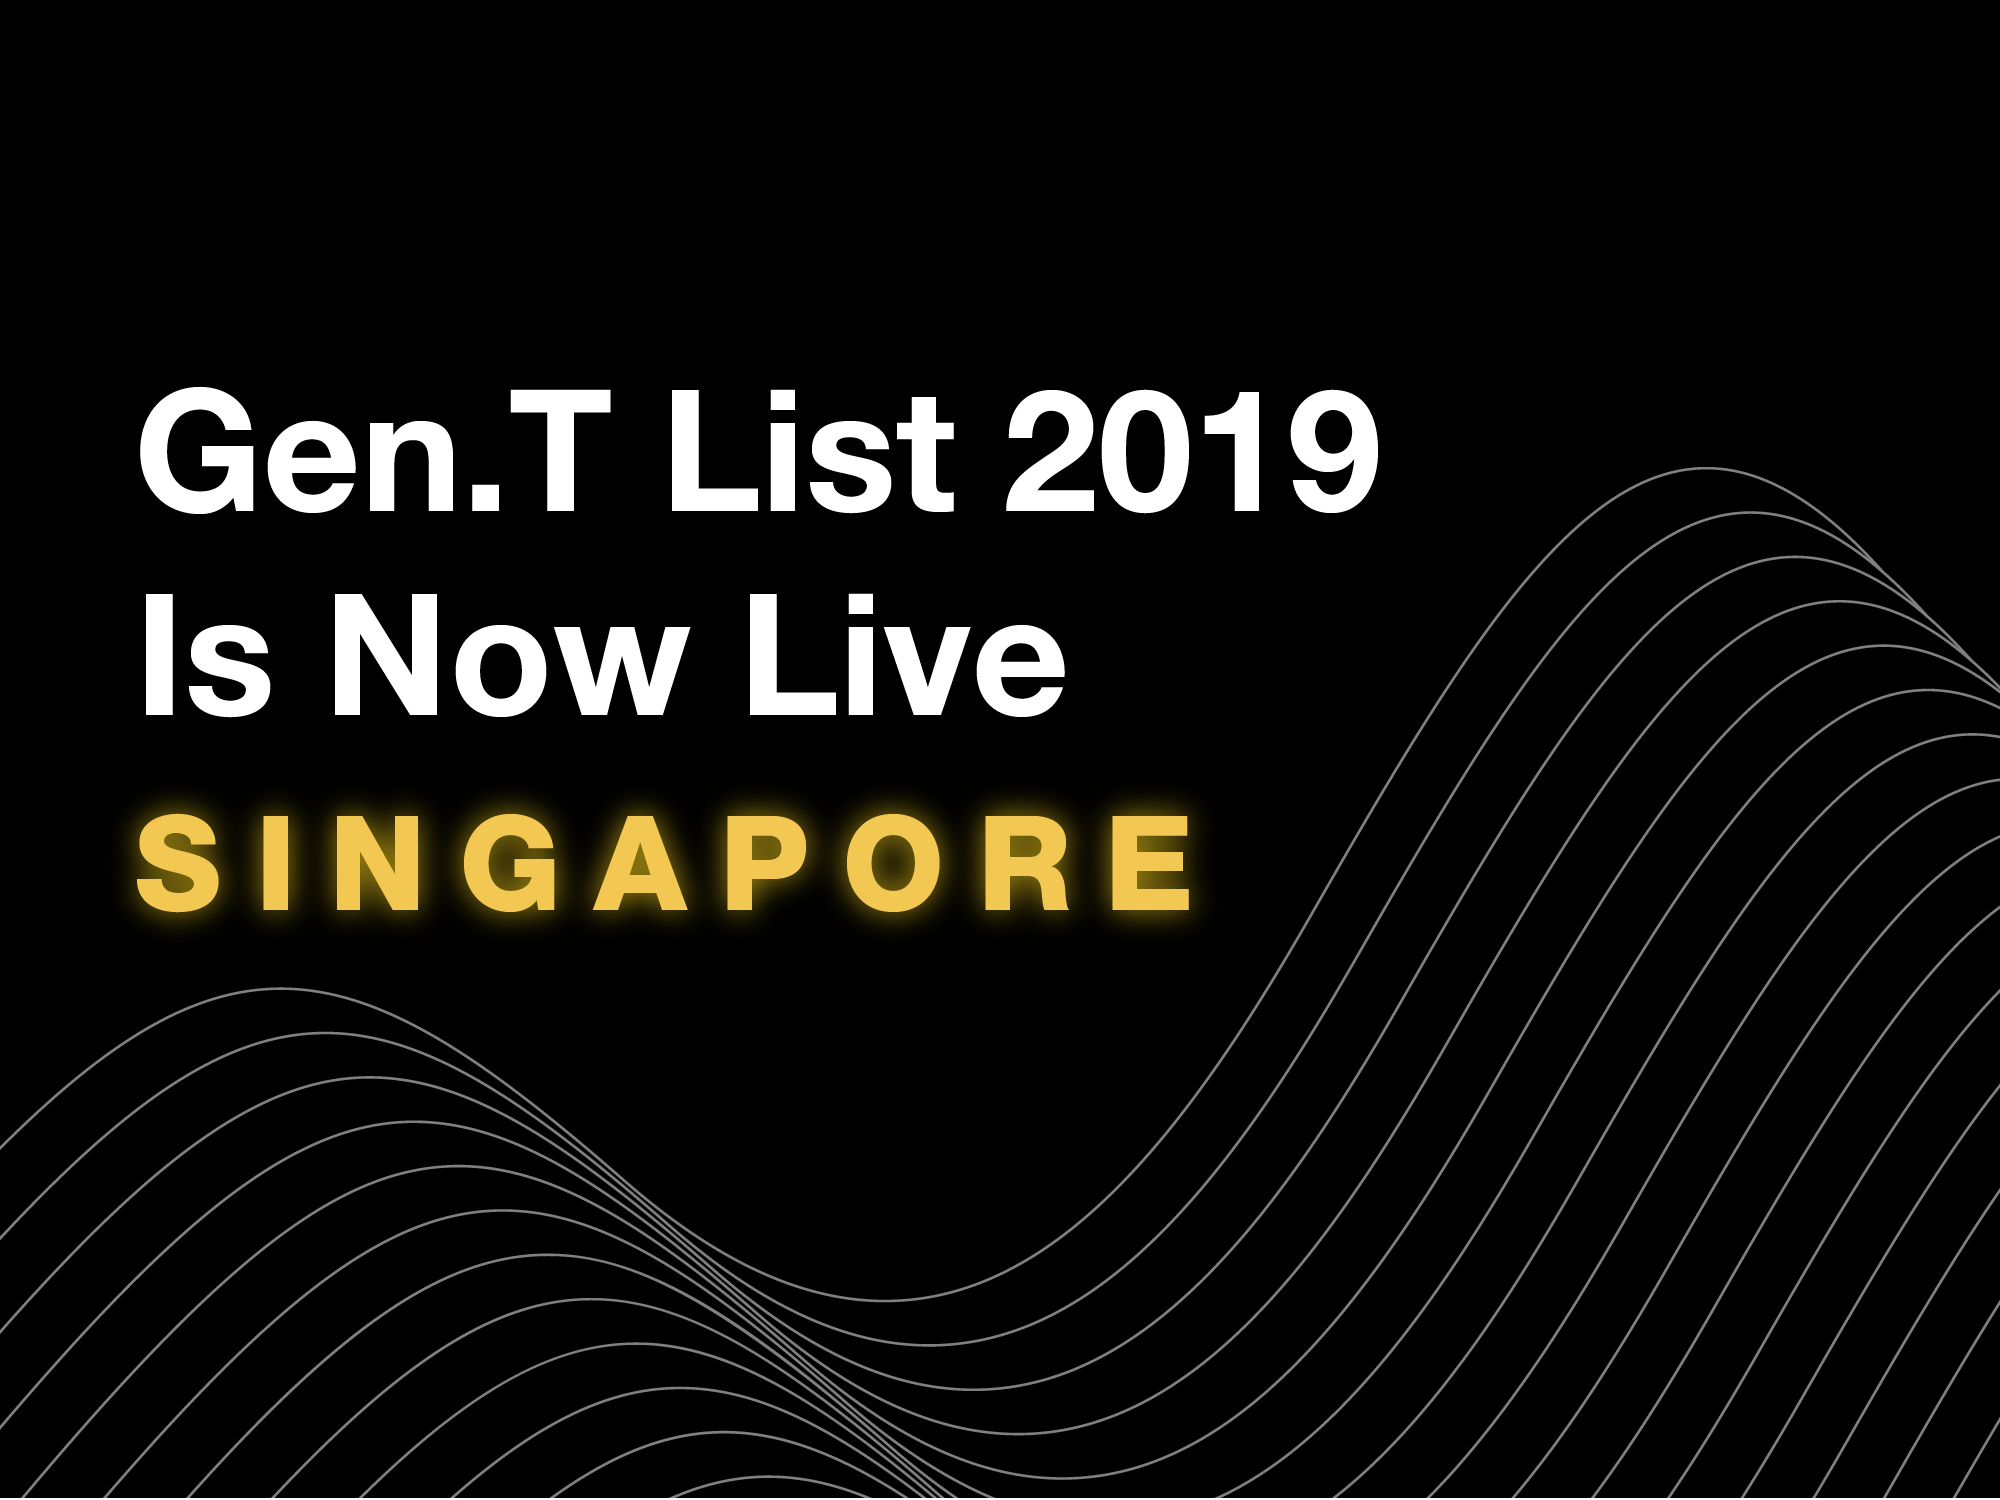 The Gen.T List 2019 Is Live: Meet This Year's 50 Singapore Honourees